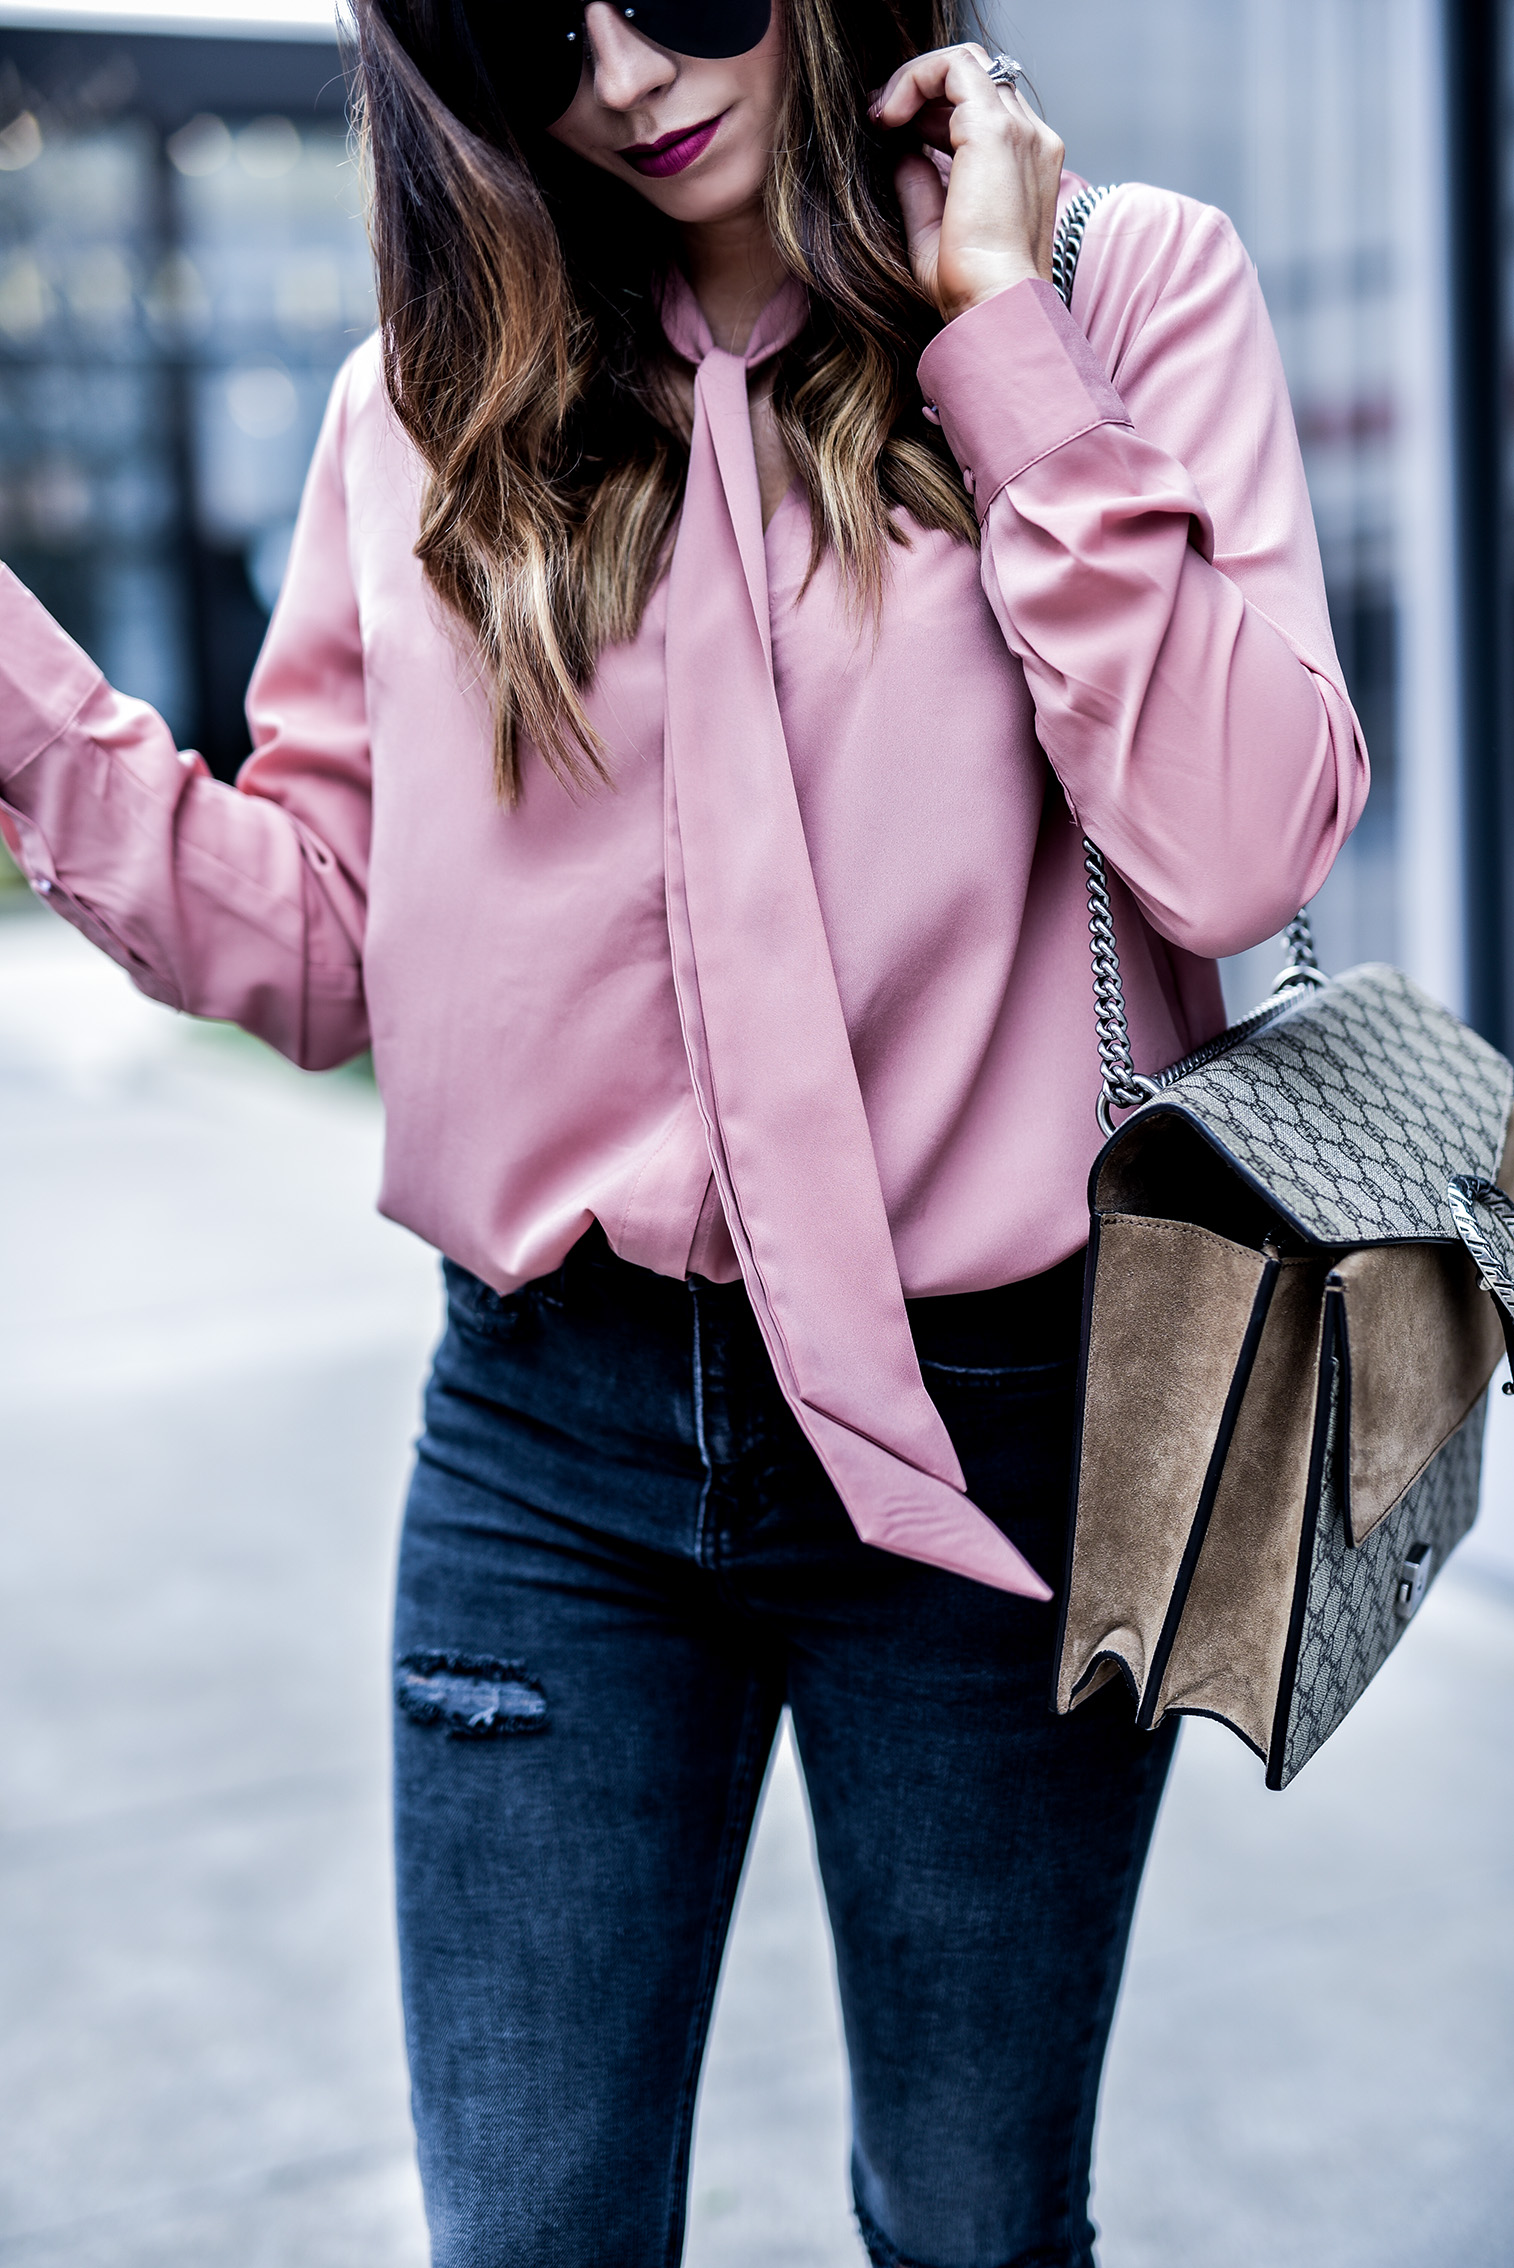 Tiffany Jais Houston fashion and lifestyle blogger sharing a blush neck-tie blouse paired with a gucci Dionysus bag, and dark grey distressed skinny jeans. Click to read more | Streetstyle, fashionista